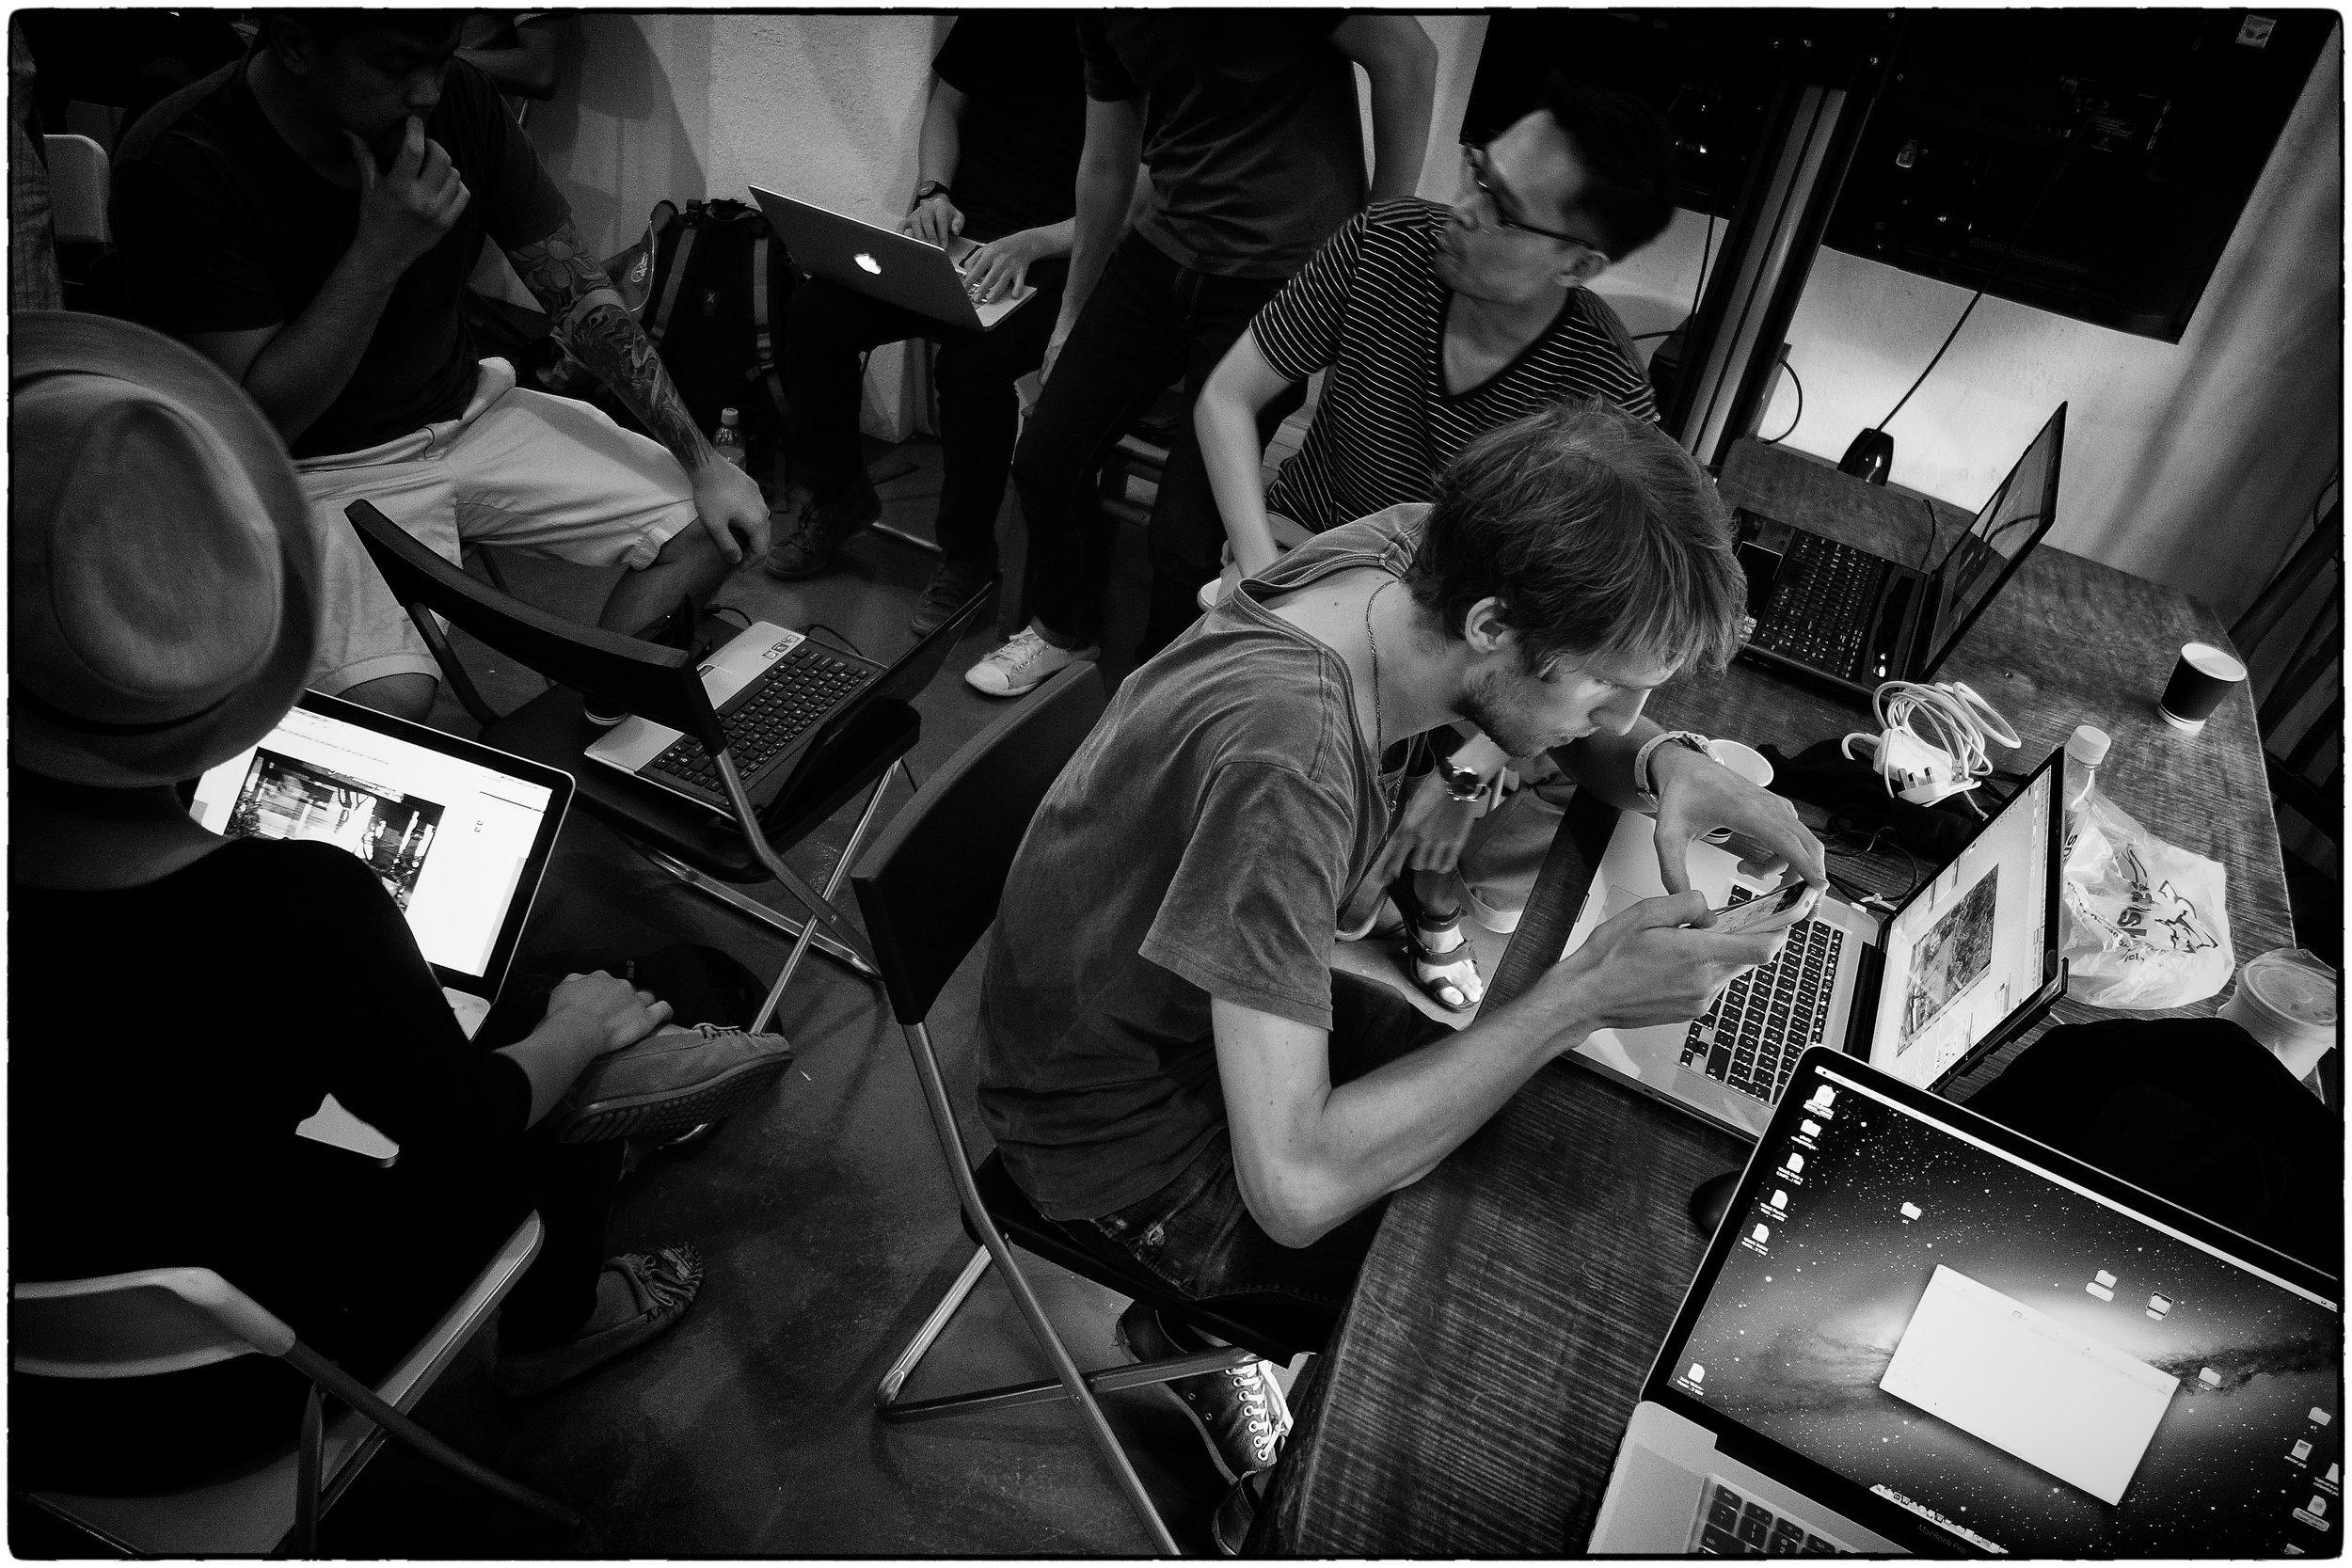 The computers all come out as participants prepare their images for printing and final sequencing of slideshow photos are tweaked.